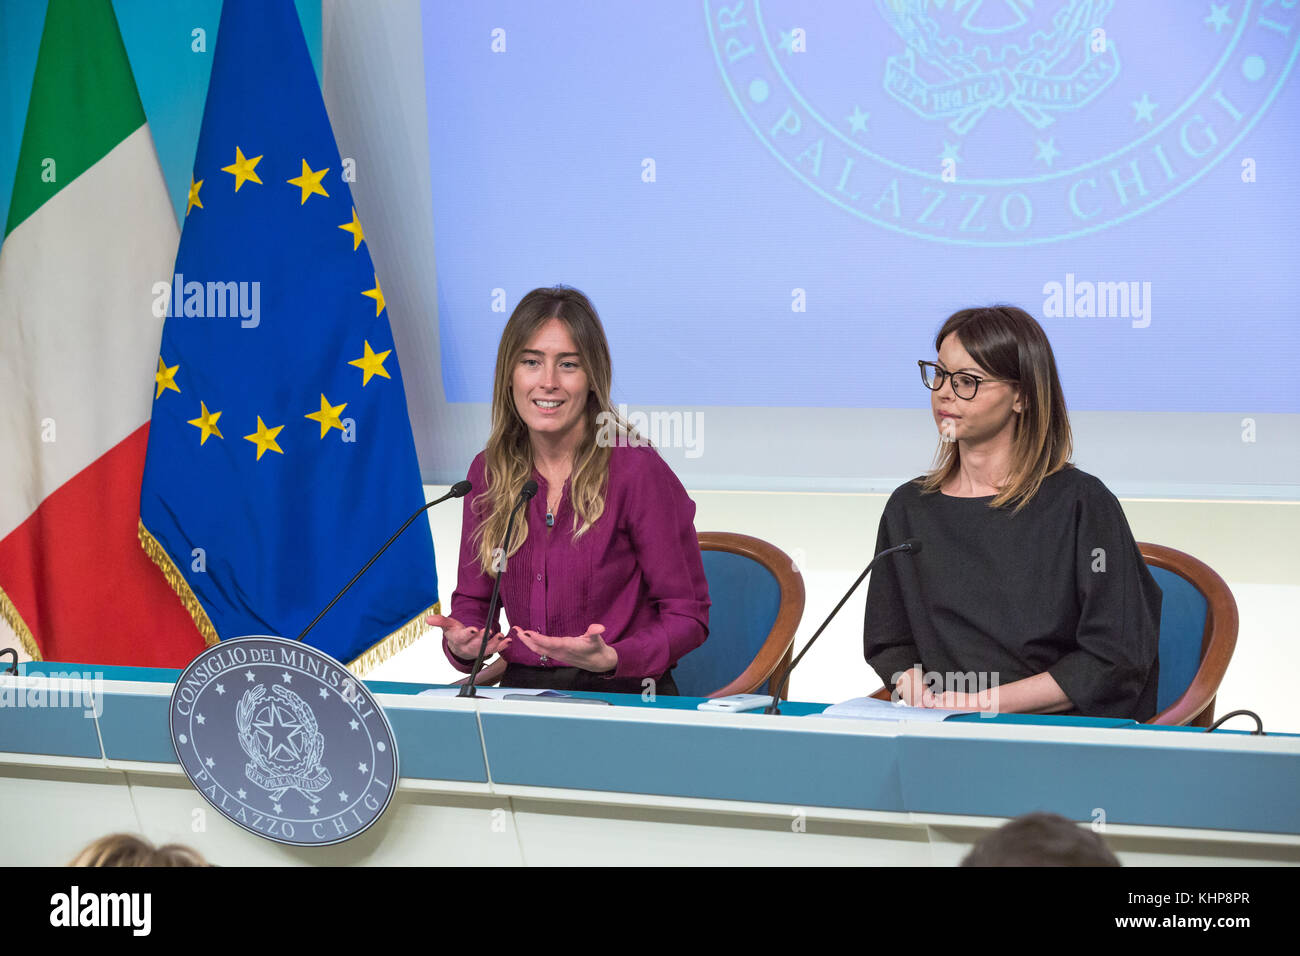 Rome,17 November 2017. Maria Elena Boschi and Lucia Annibali during the Presentation of the Campaign for the National Stock Photo